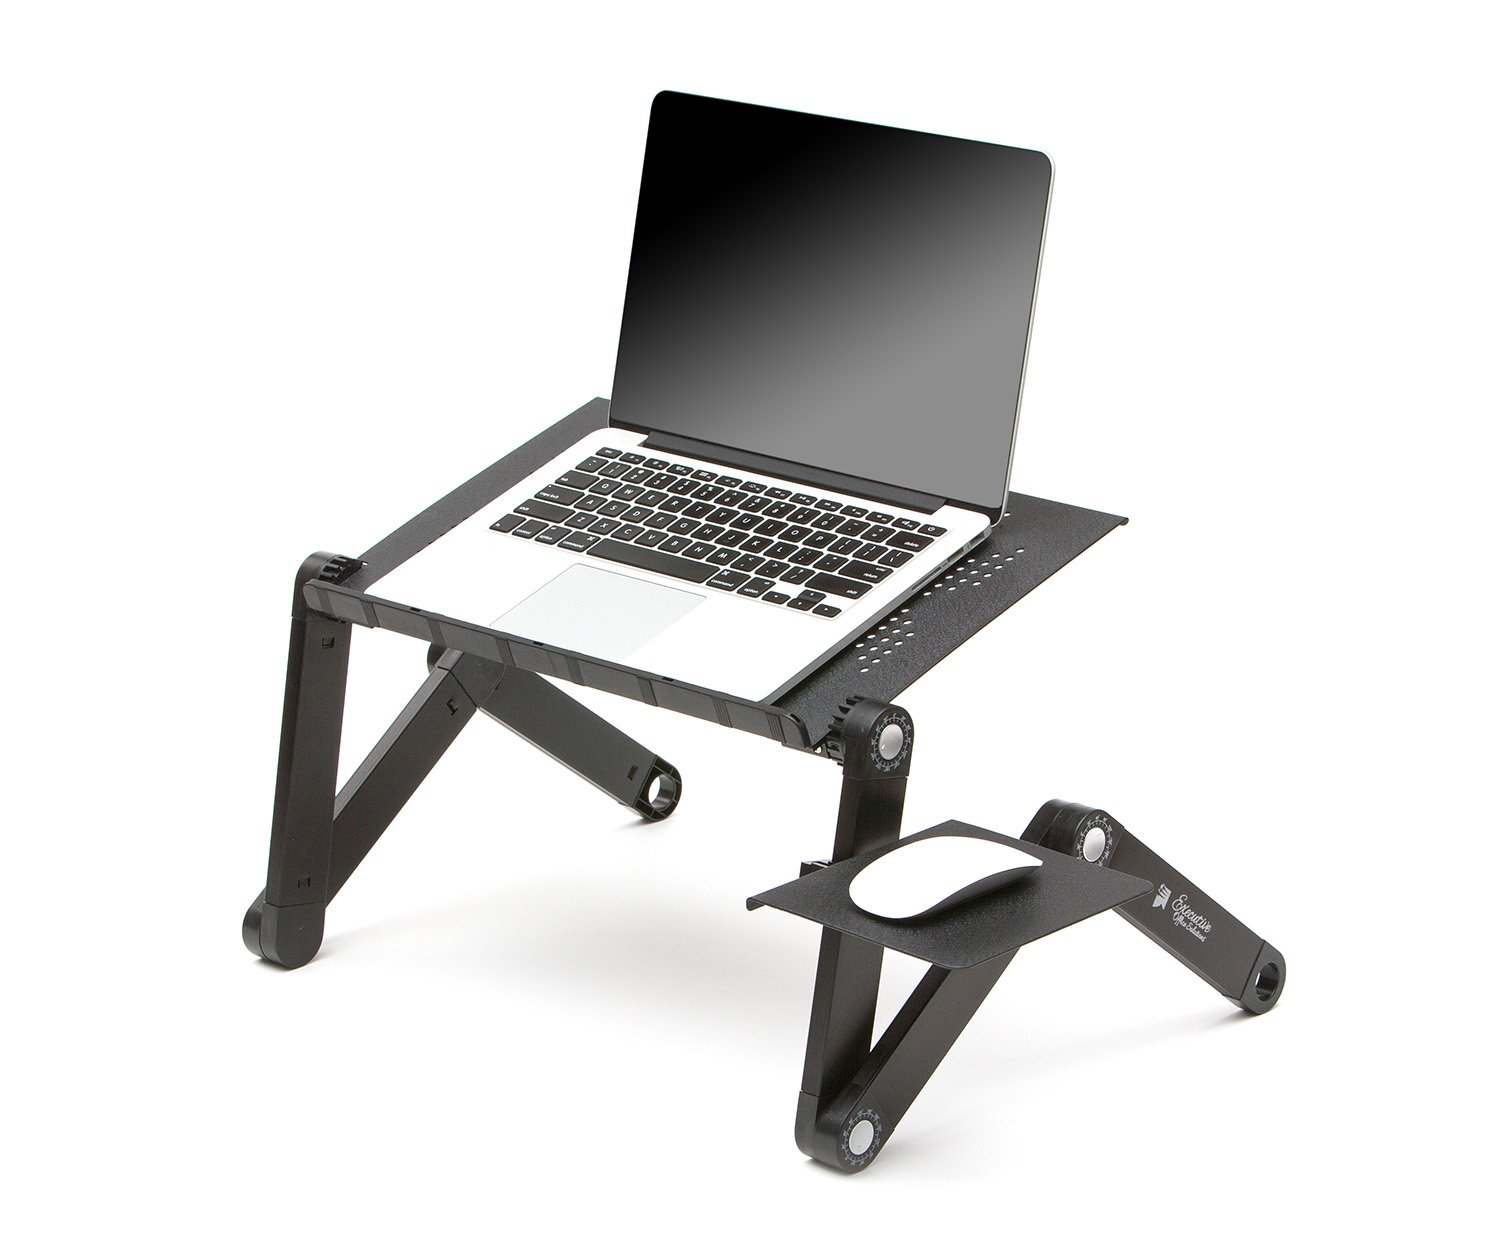 Strong-Willed Ventilated Adjustable Laptop Stand Laptop & Desktop Accessories Black